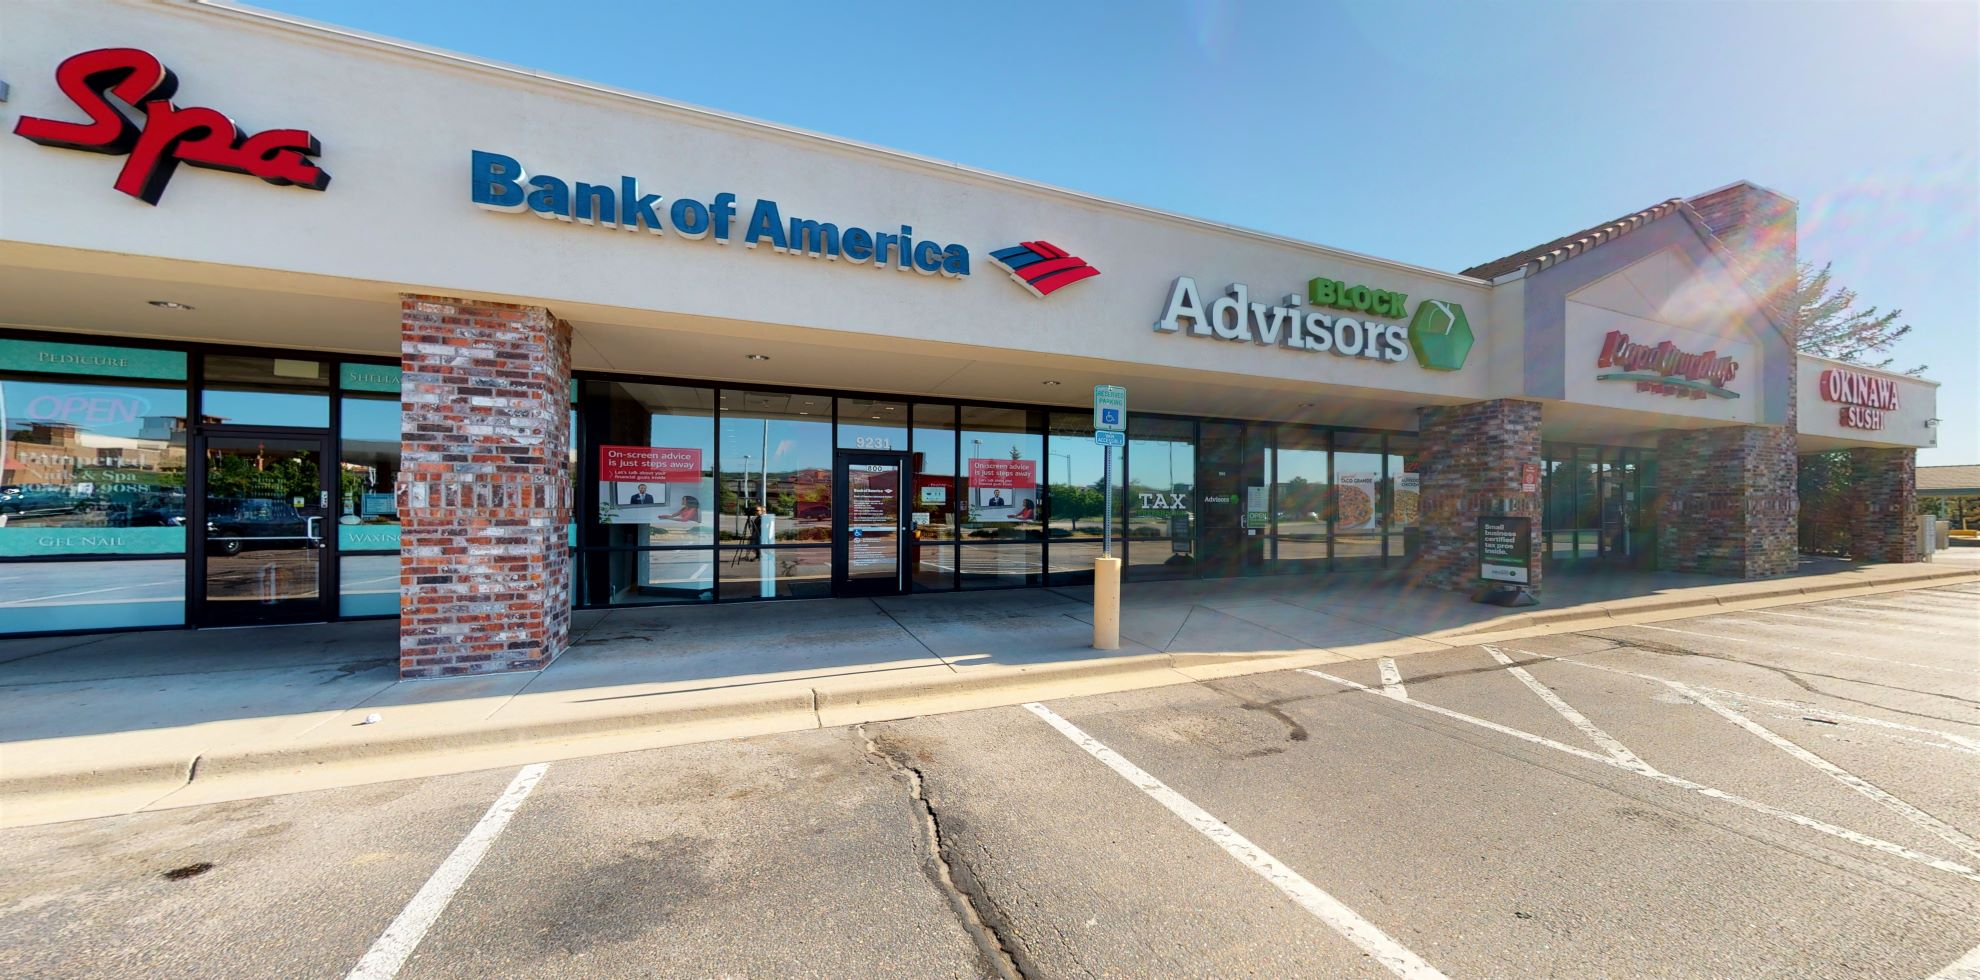 Bank of America Advanced Center with walk-up ATM   9231 E Lincoln Ave, Lone Tree, CO 80124